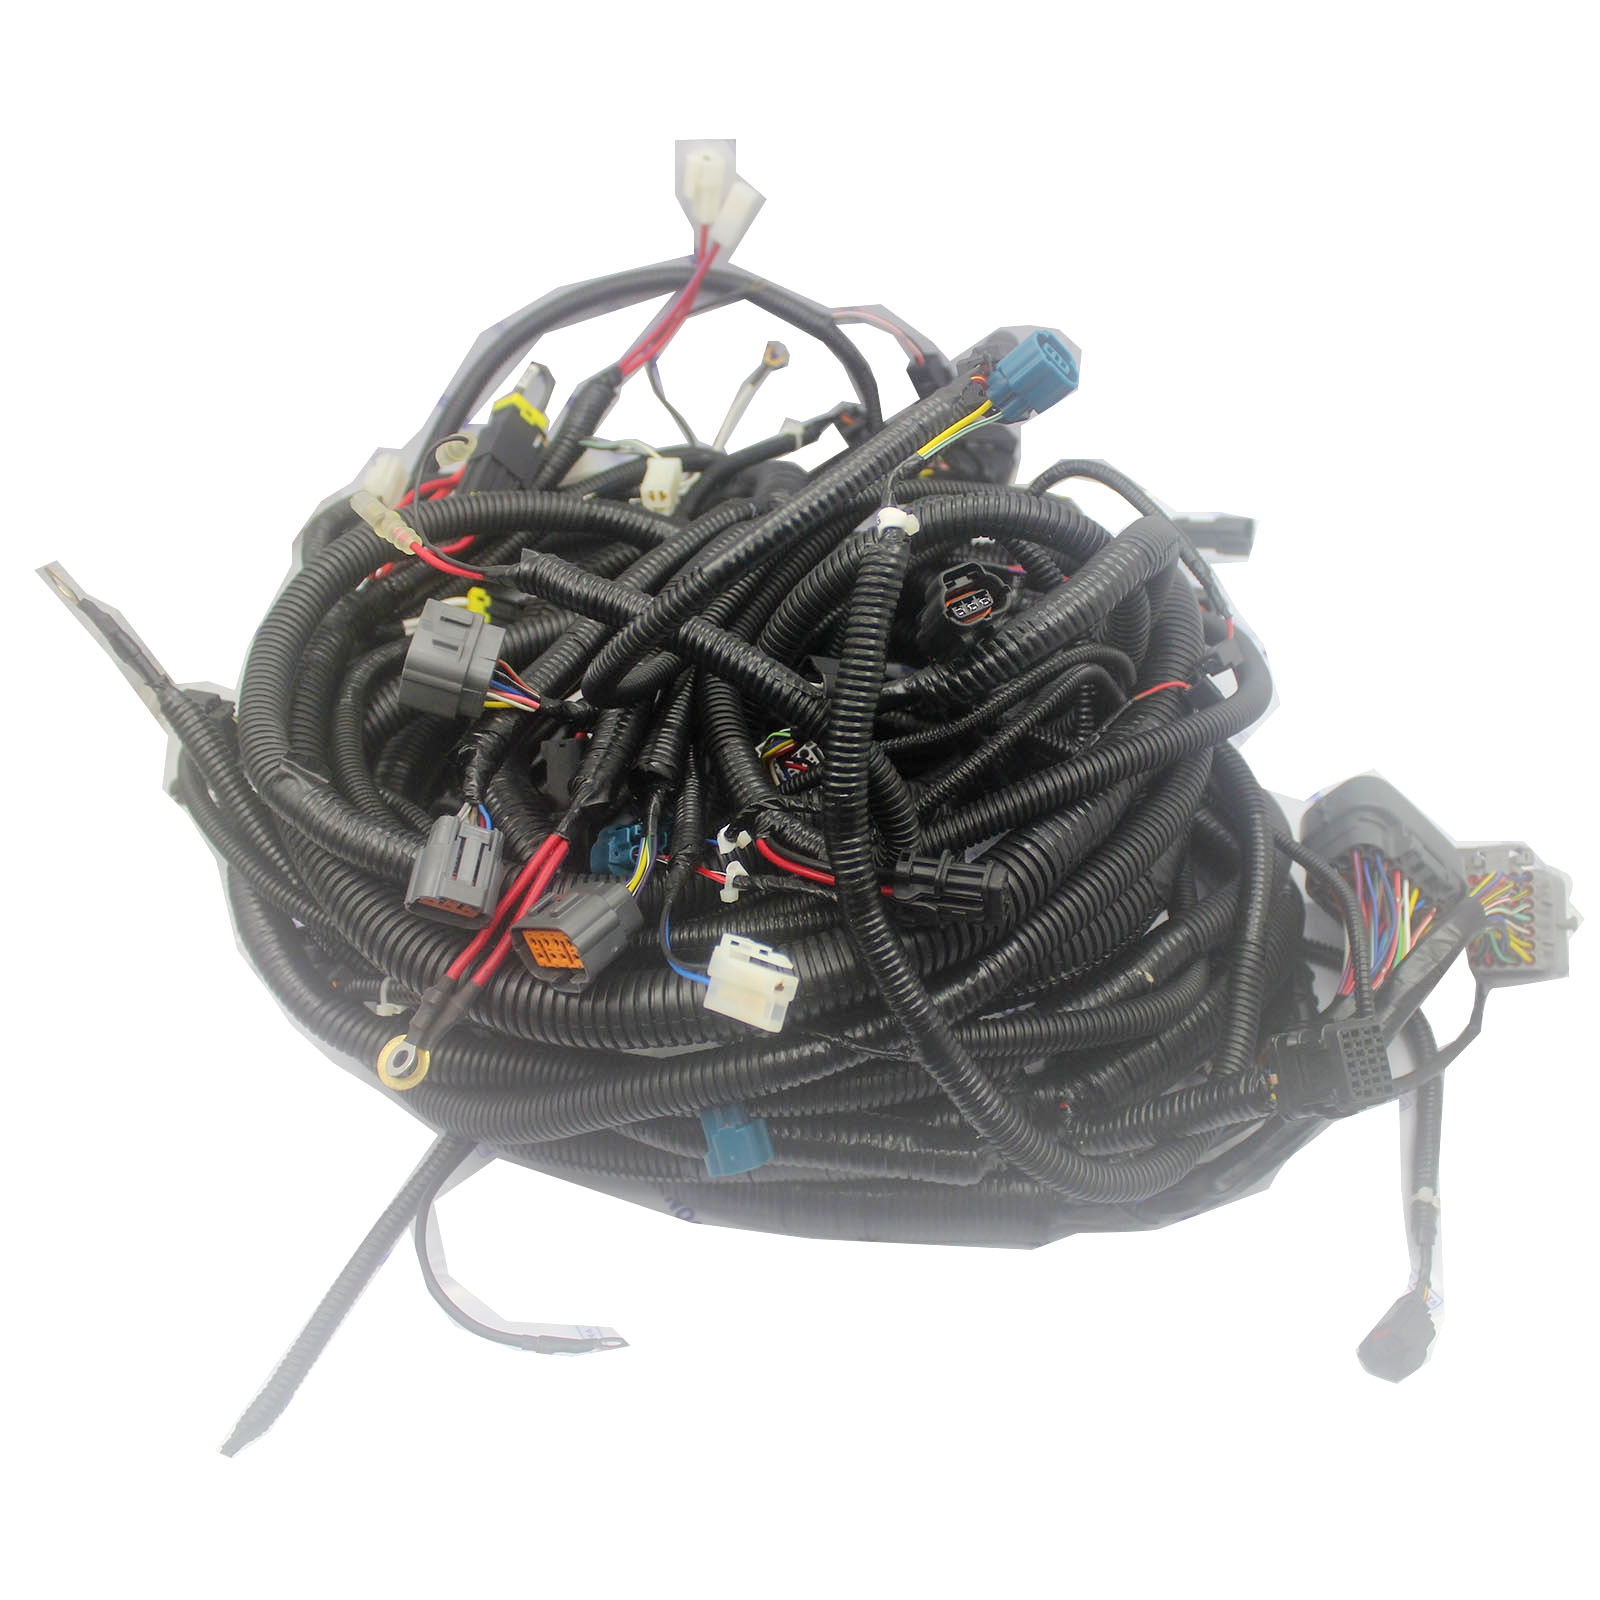 hight resolution of 0001859 outside external wiring harness for hitachi ex220 3 4l80e external wiring harness details about 0001859